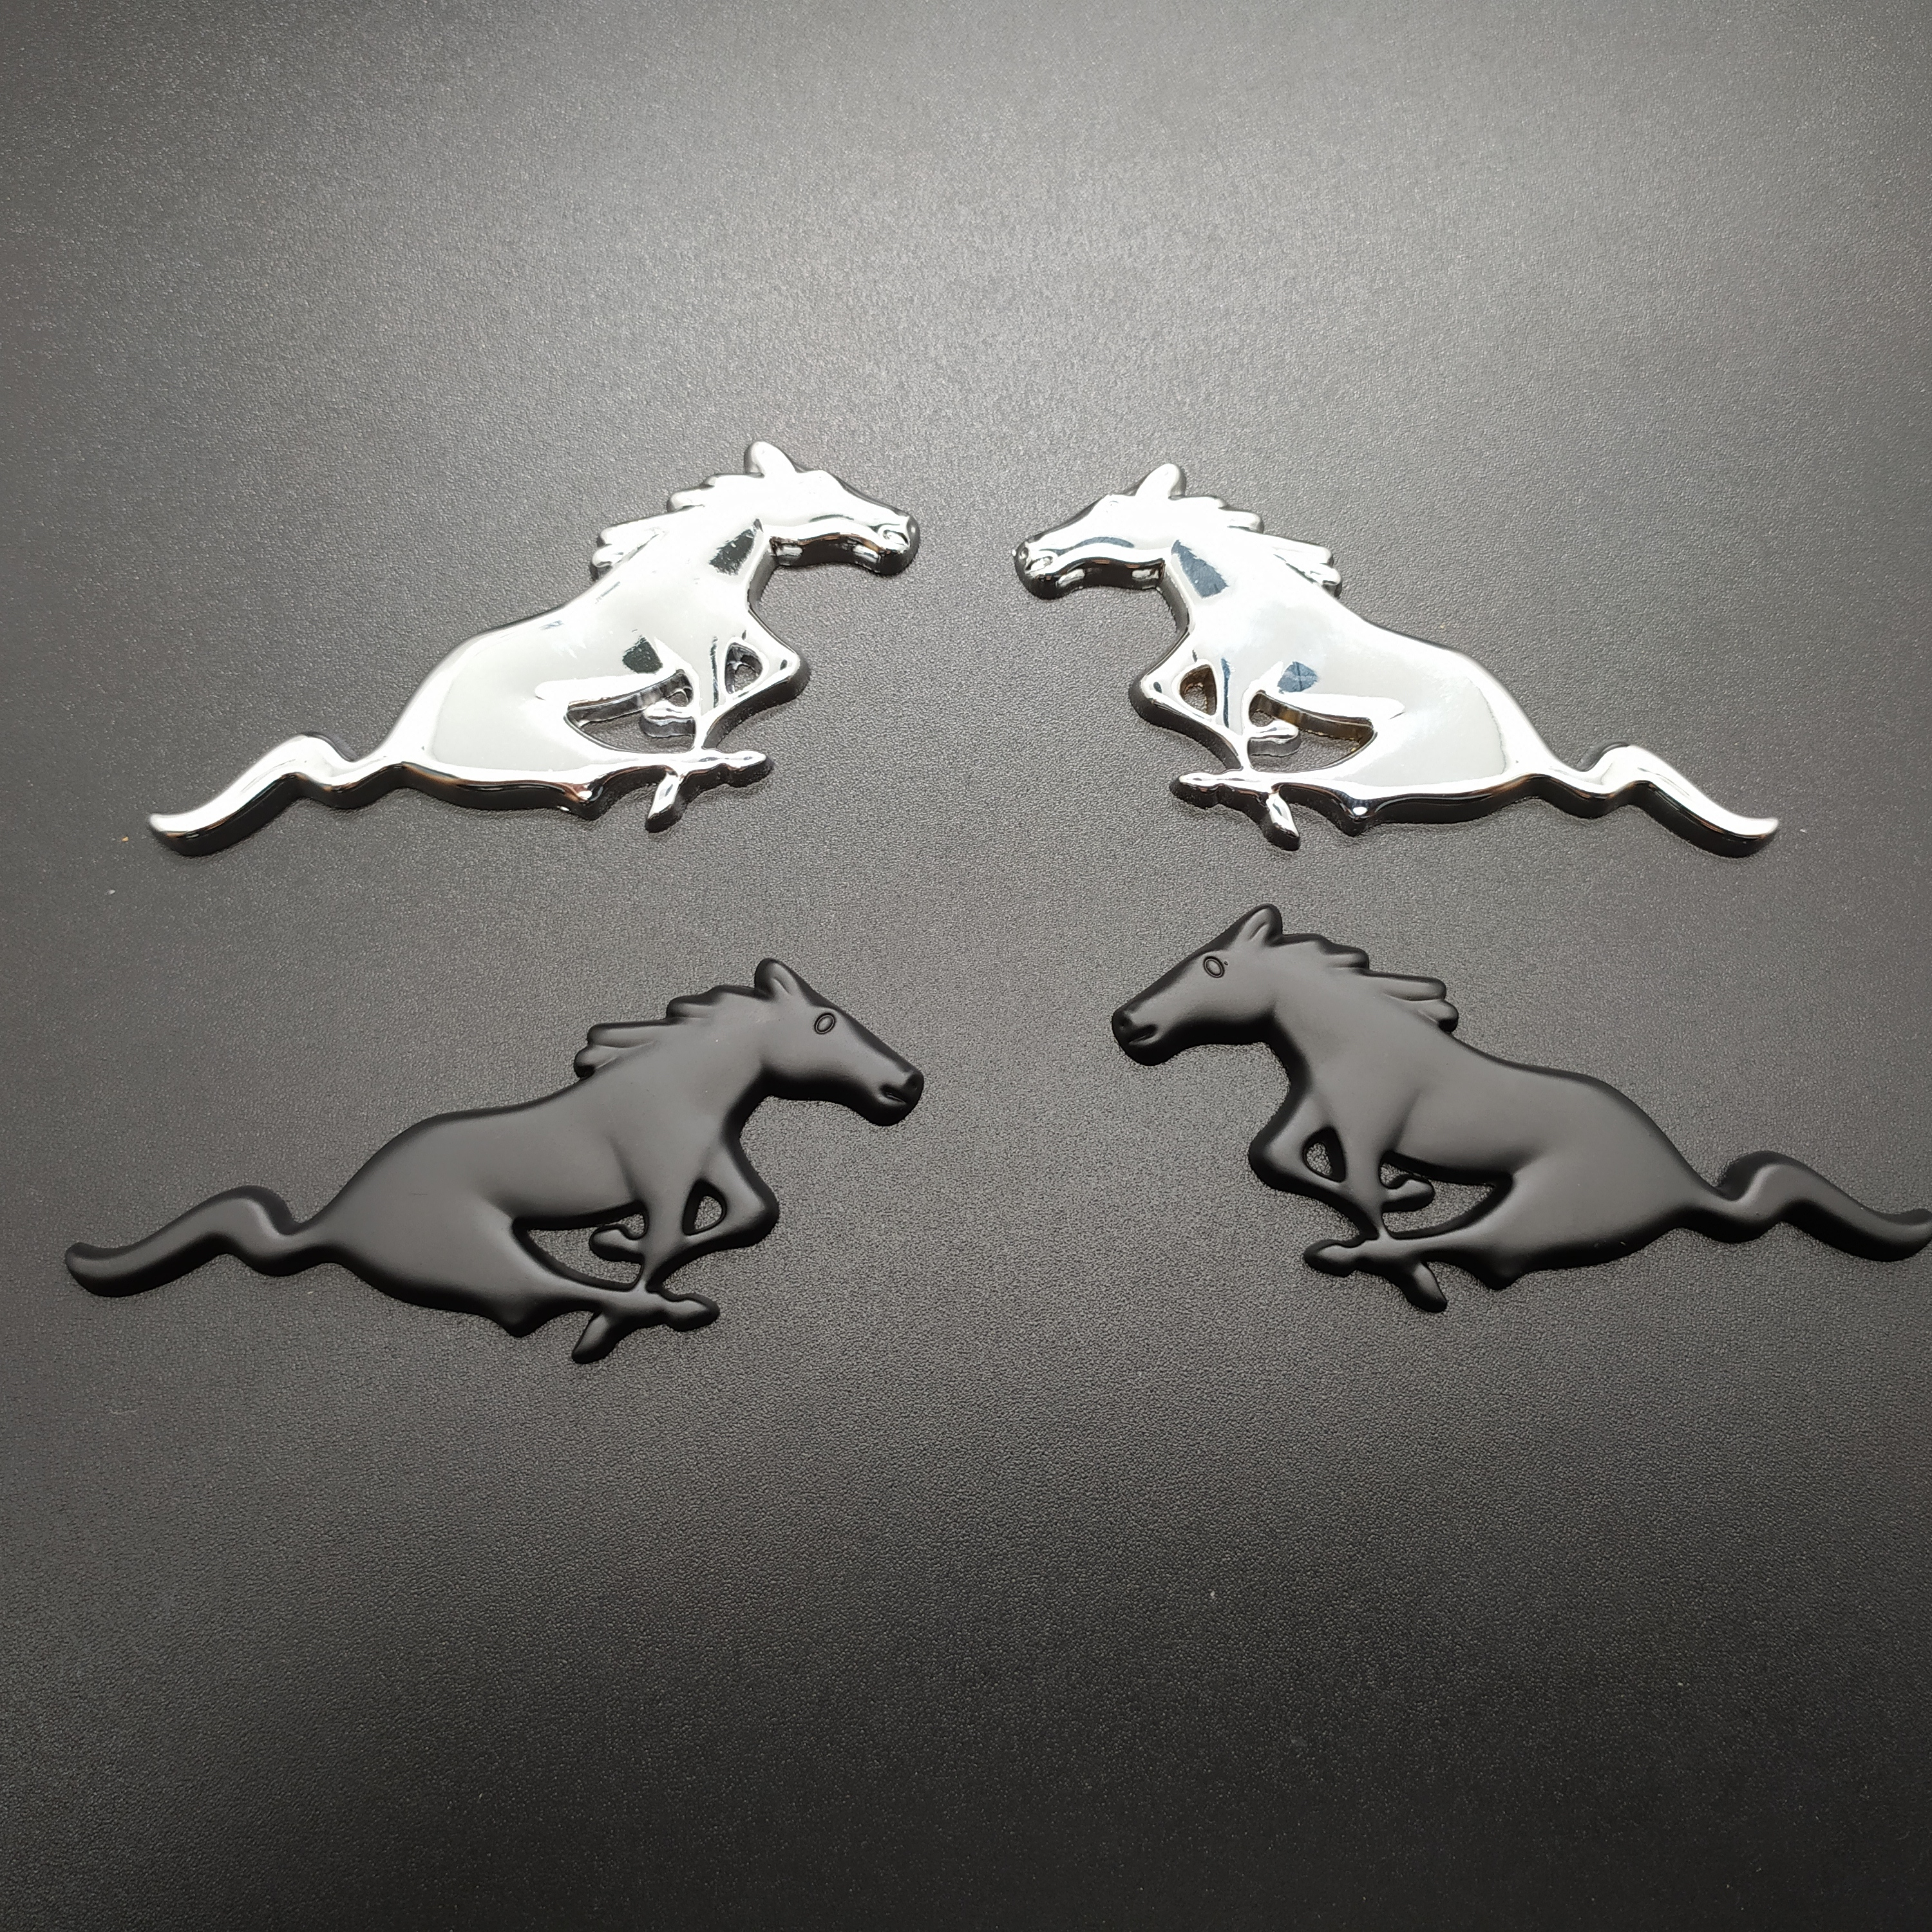 2PCS 3D Chrome Metal Running Horse Sticker Emblem Badge For Ford Mustang Shelby GT Rear Trunk Decor Car Styling Accessories